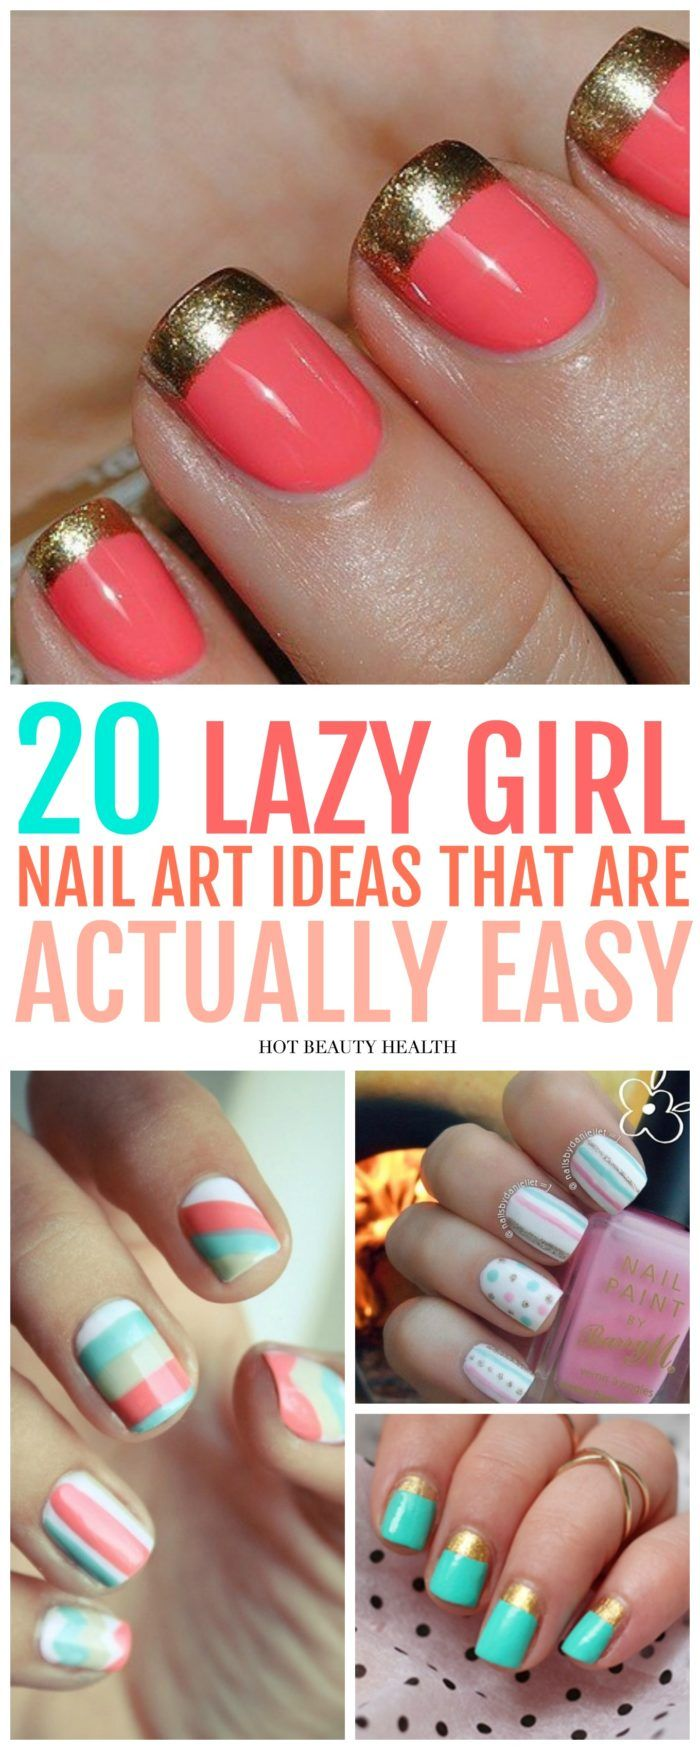 20 Lazy Girl Nail Art Ideas That Are Actually Easy Pinterest